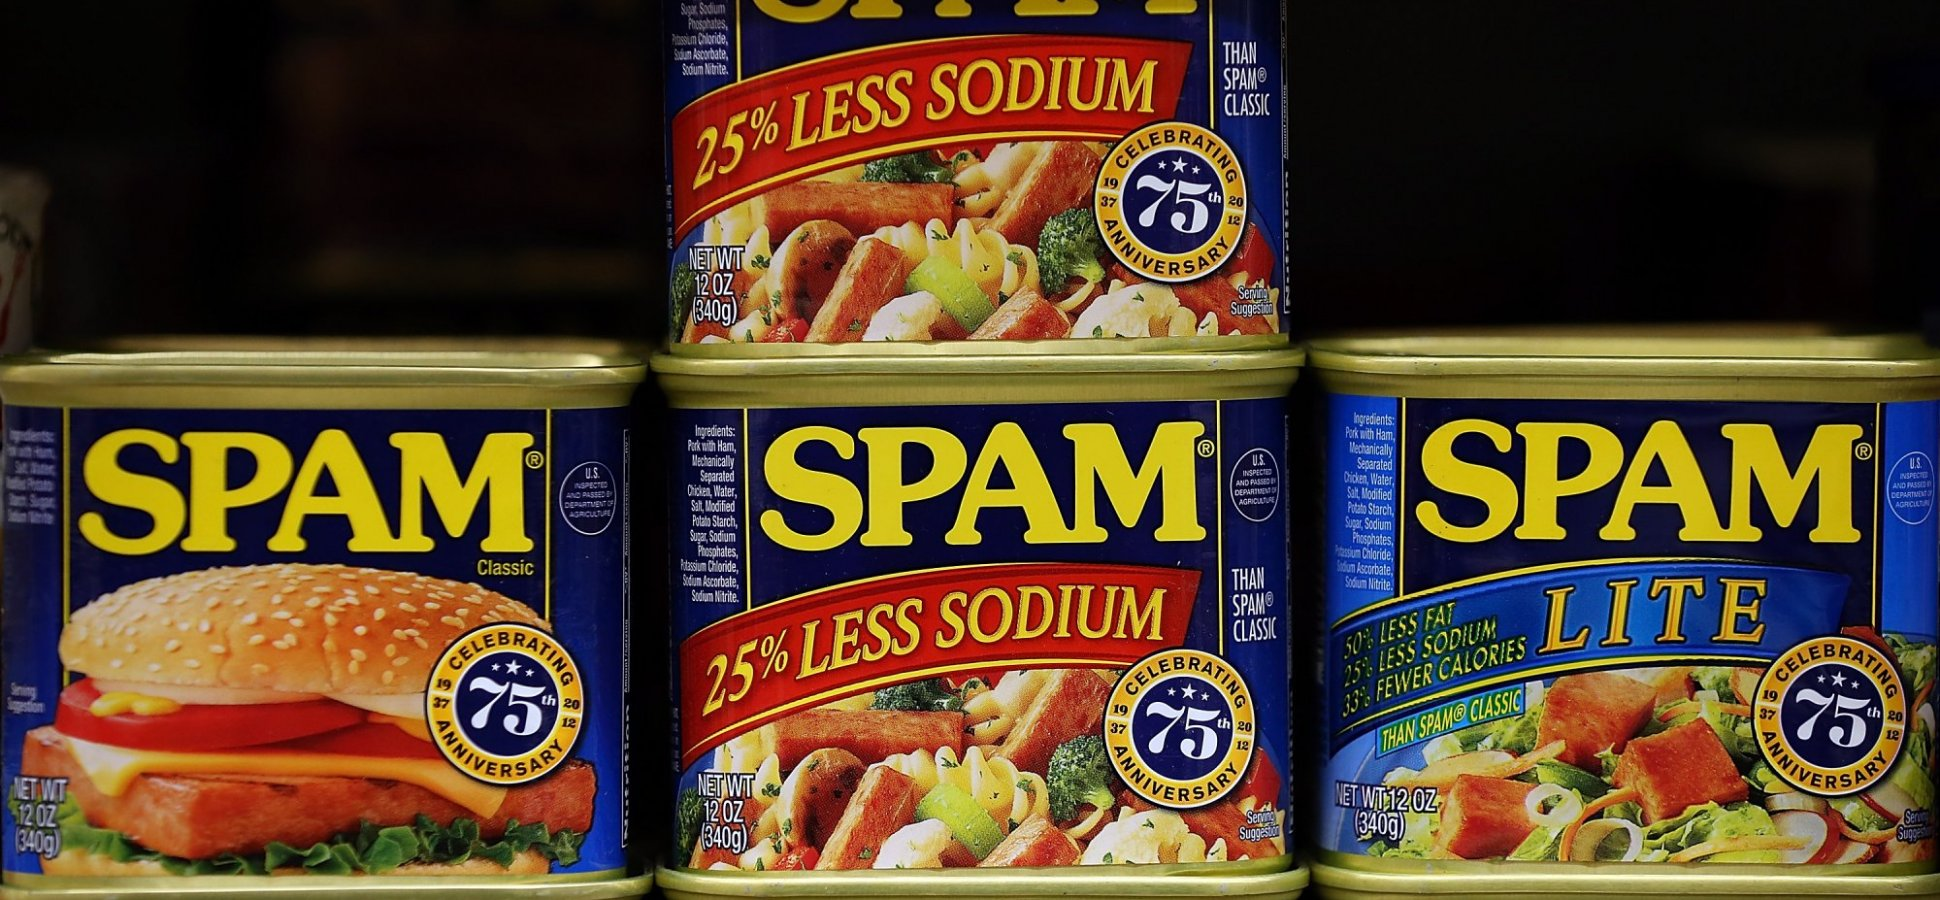 Spam, the Canned Meat Product, Takes a Crazy Page From Starbucks